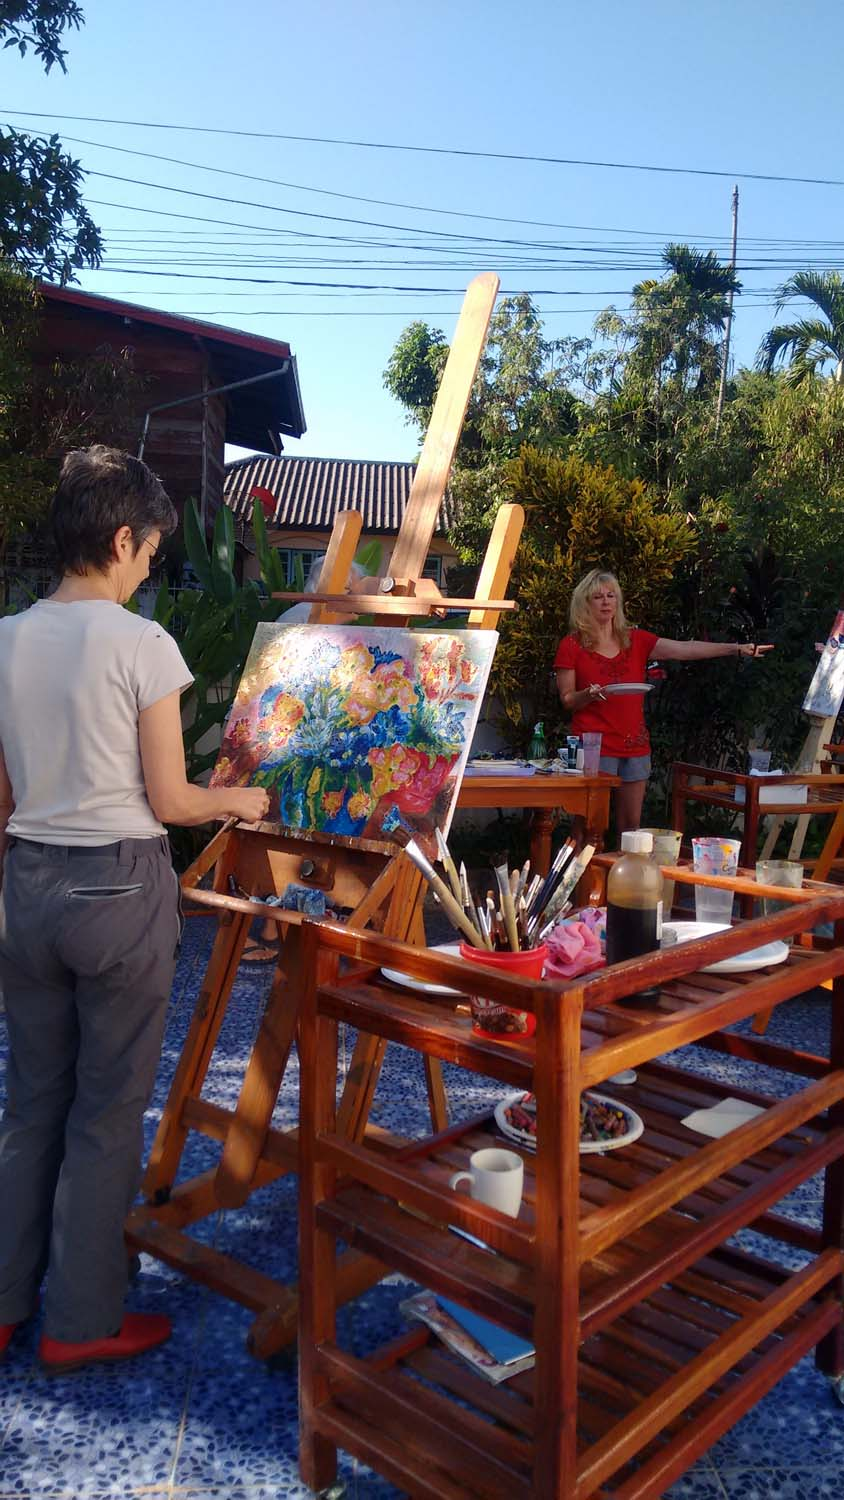 Artist Frances enjoying a painting holiday in Thailand  019.jpg